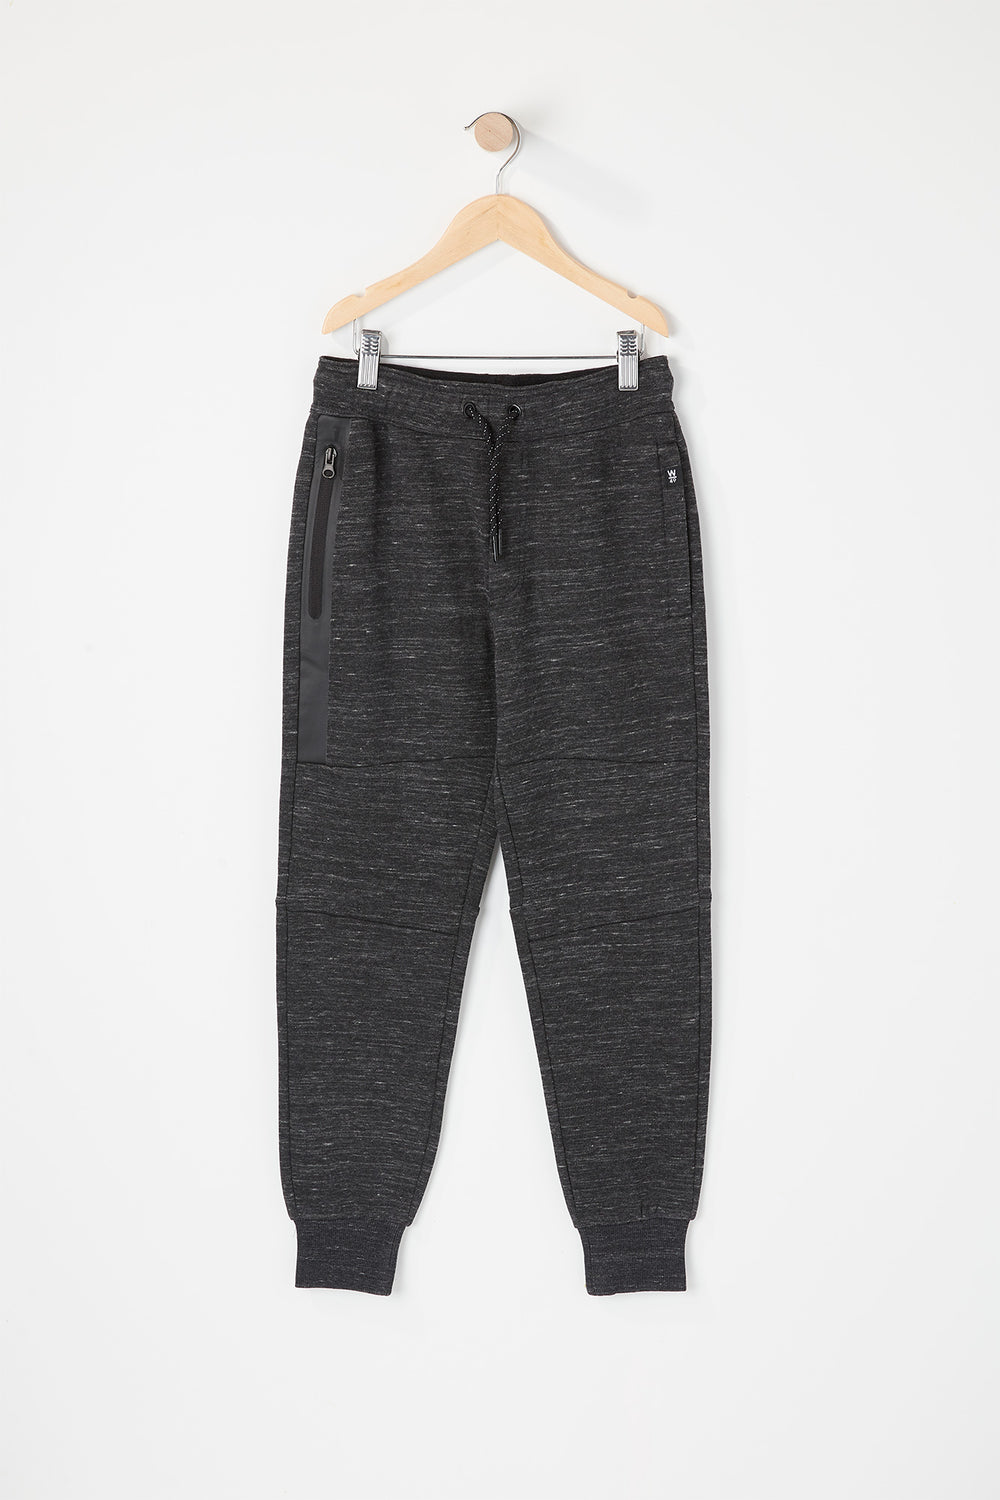 West49 Youth Zip Pocket Jogger Charcoal